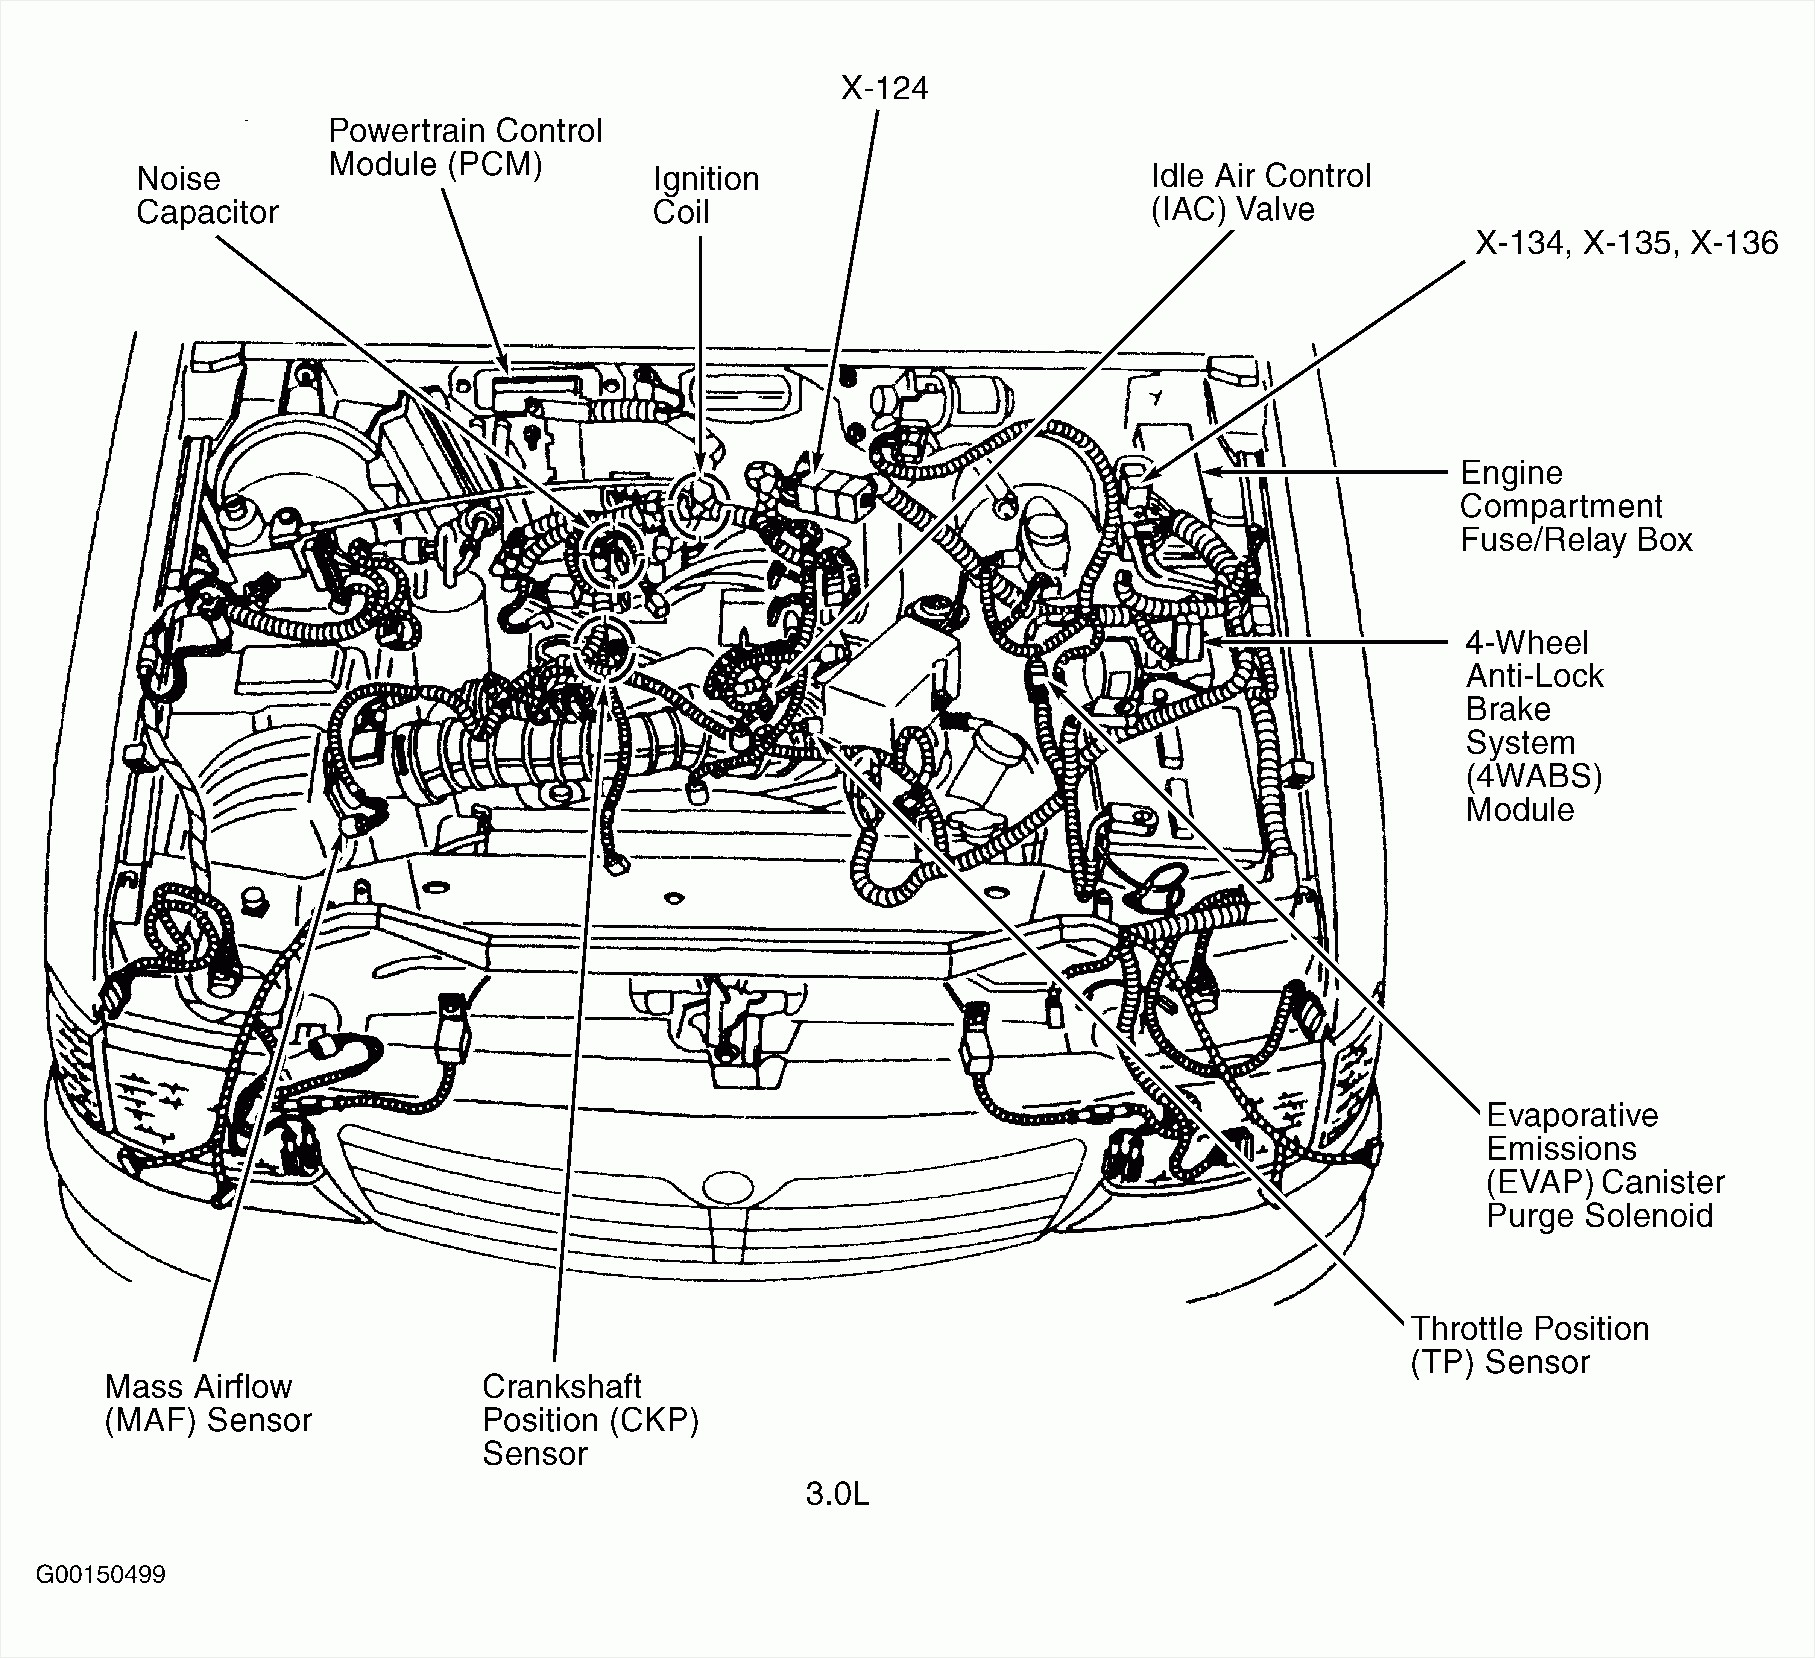 1992 toyota camry 3 0 v6 engine diagram read all wiring diagram 99 Toyota Camry Wiring Diagram